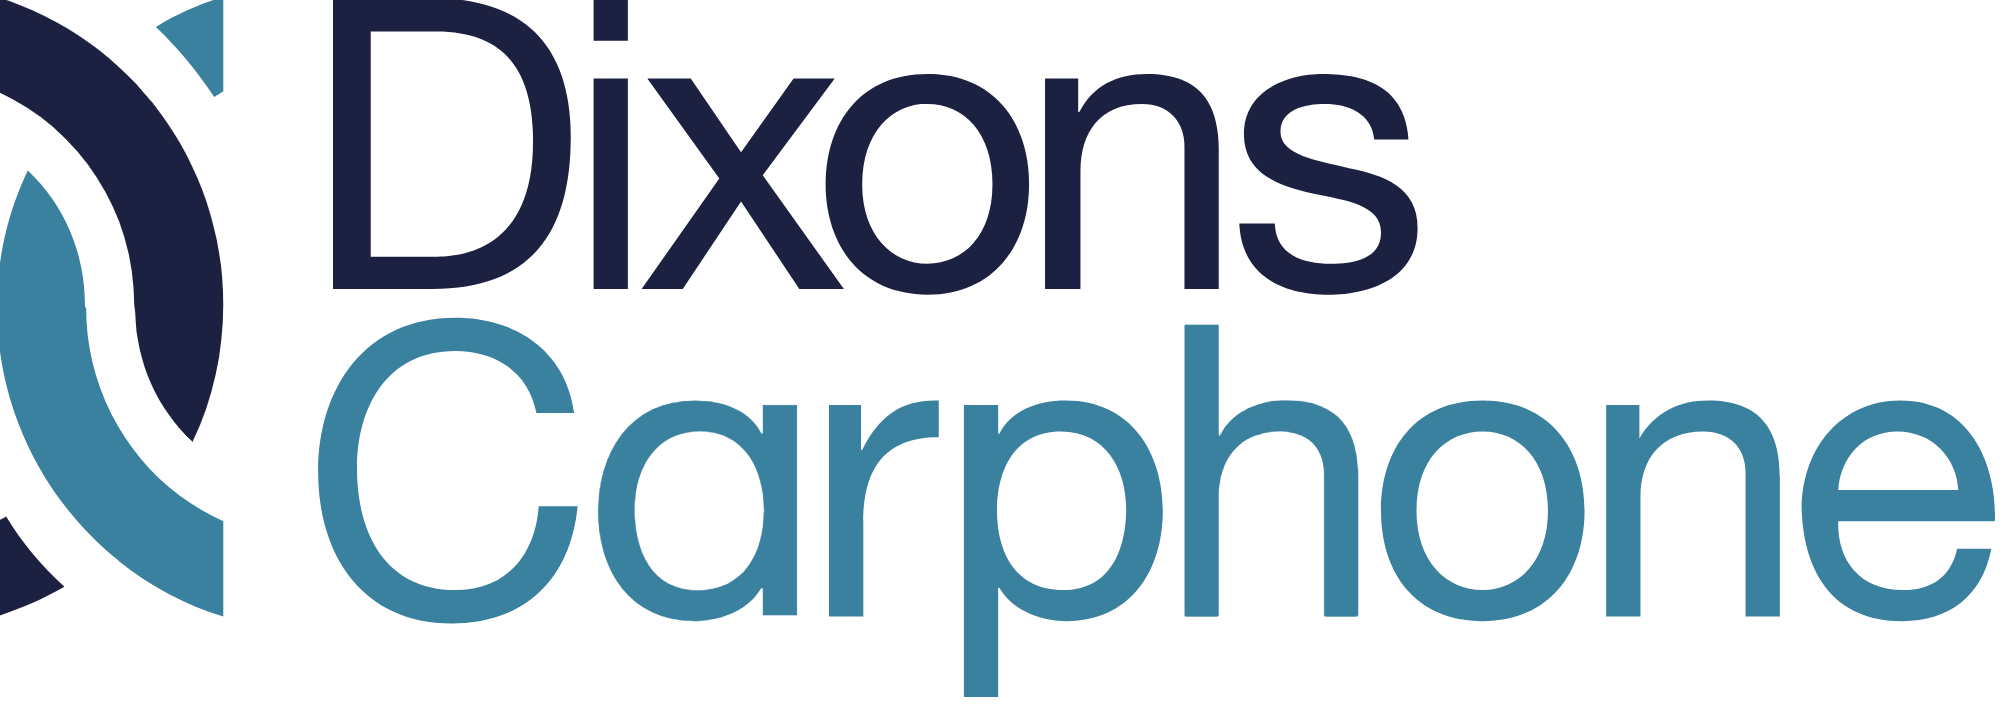 British Retailer Dixons Carphone Faces a Major Breach That Affects Nearly Six Million Bank Cards